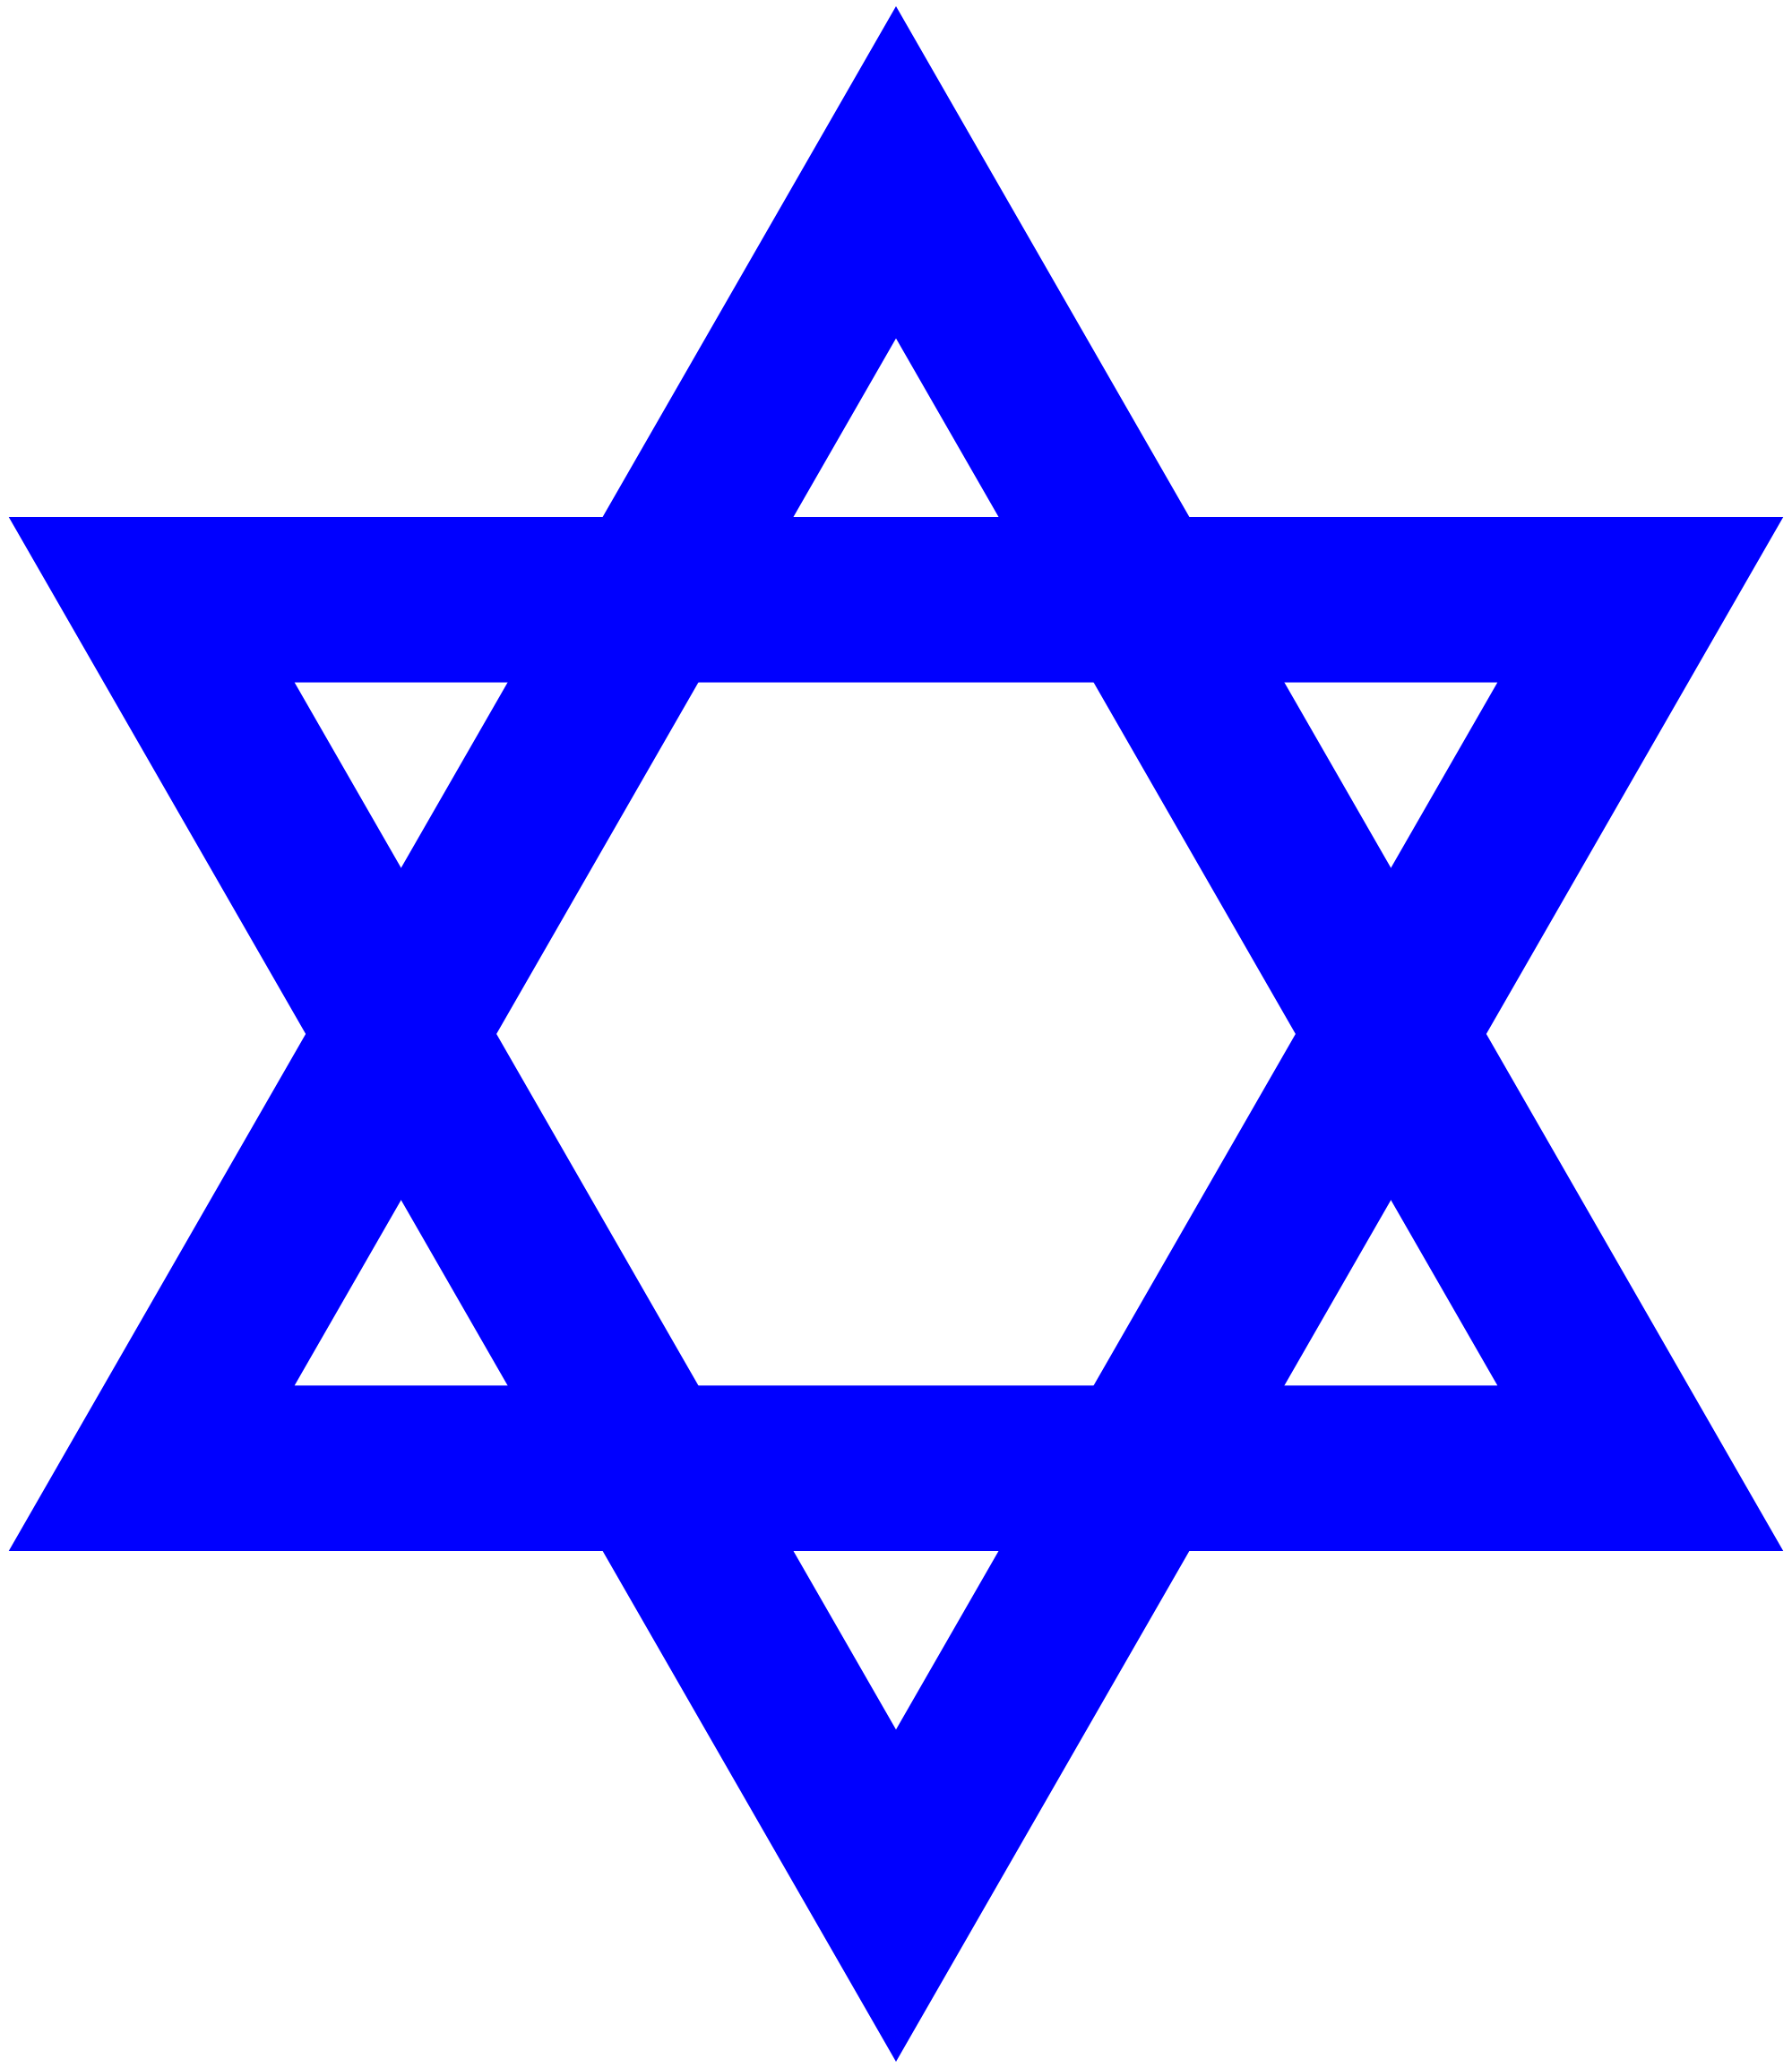 Star of david clipart free clipart transparent Star of David - Wikipedia, the free encyclopedia | Jewish tattoos ... clipart transparent